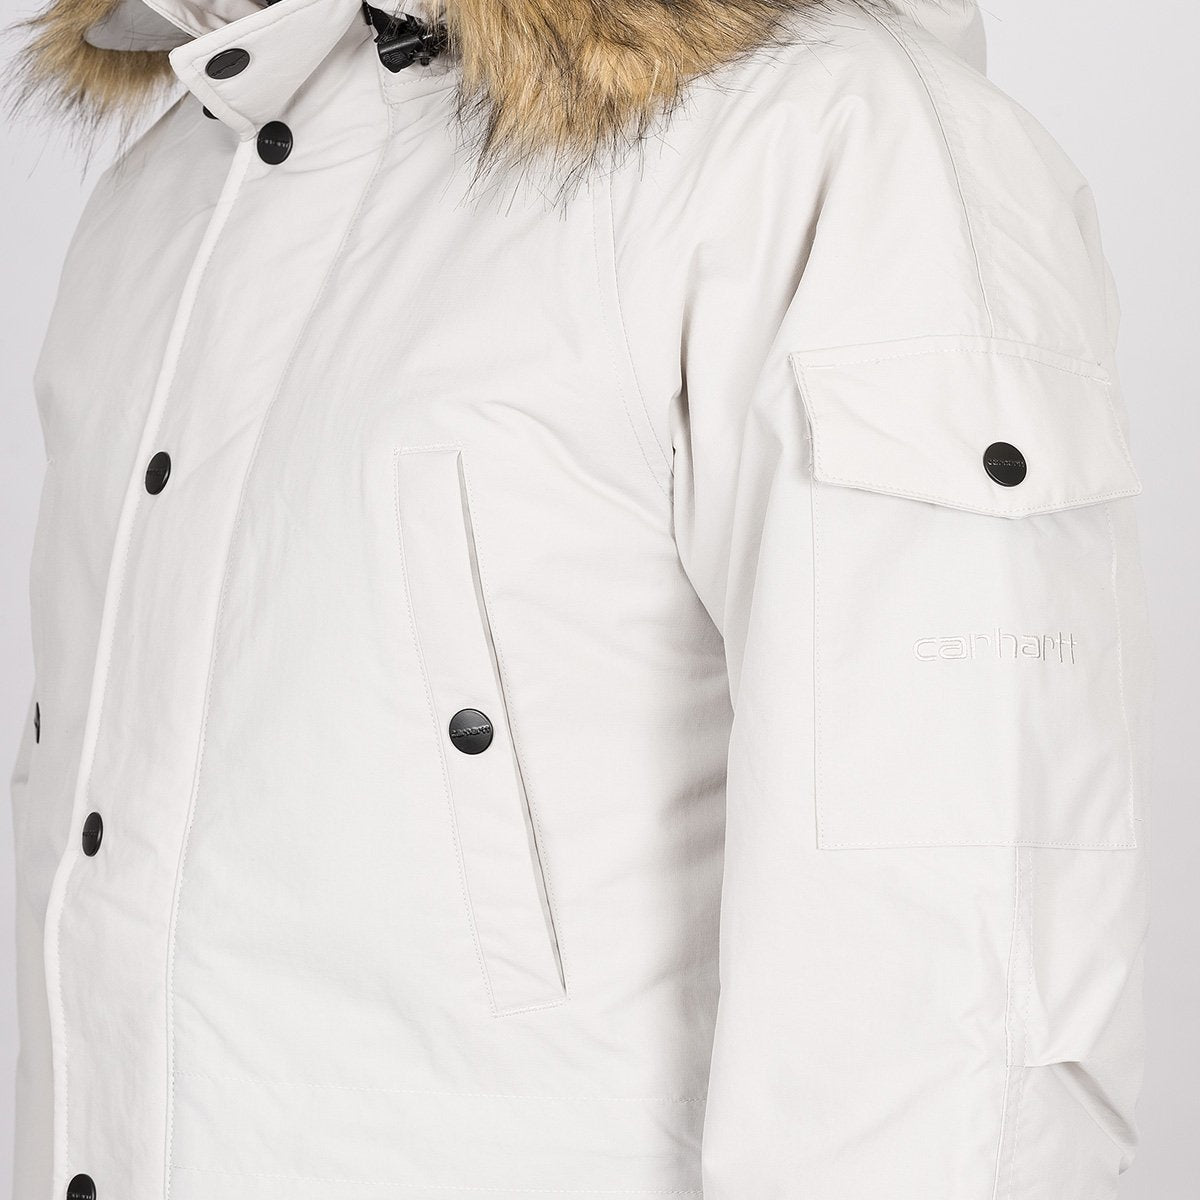 Carhartt WIP Anchorage Parka Jacket Cinder/Off White - Clothing